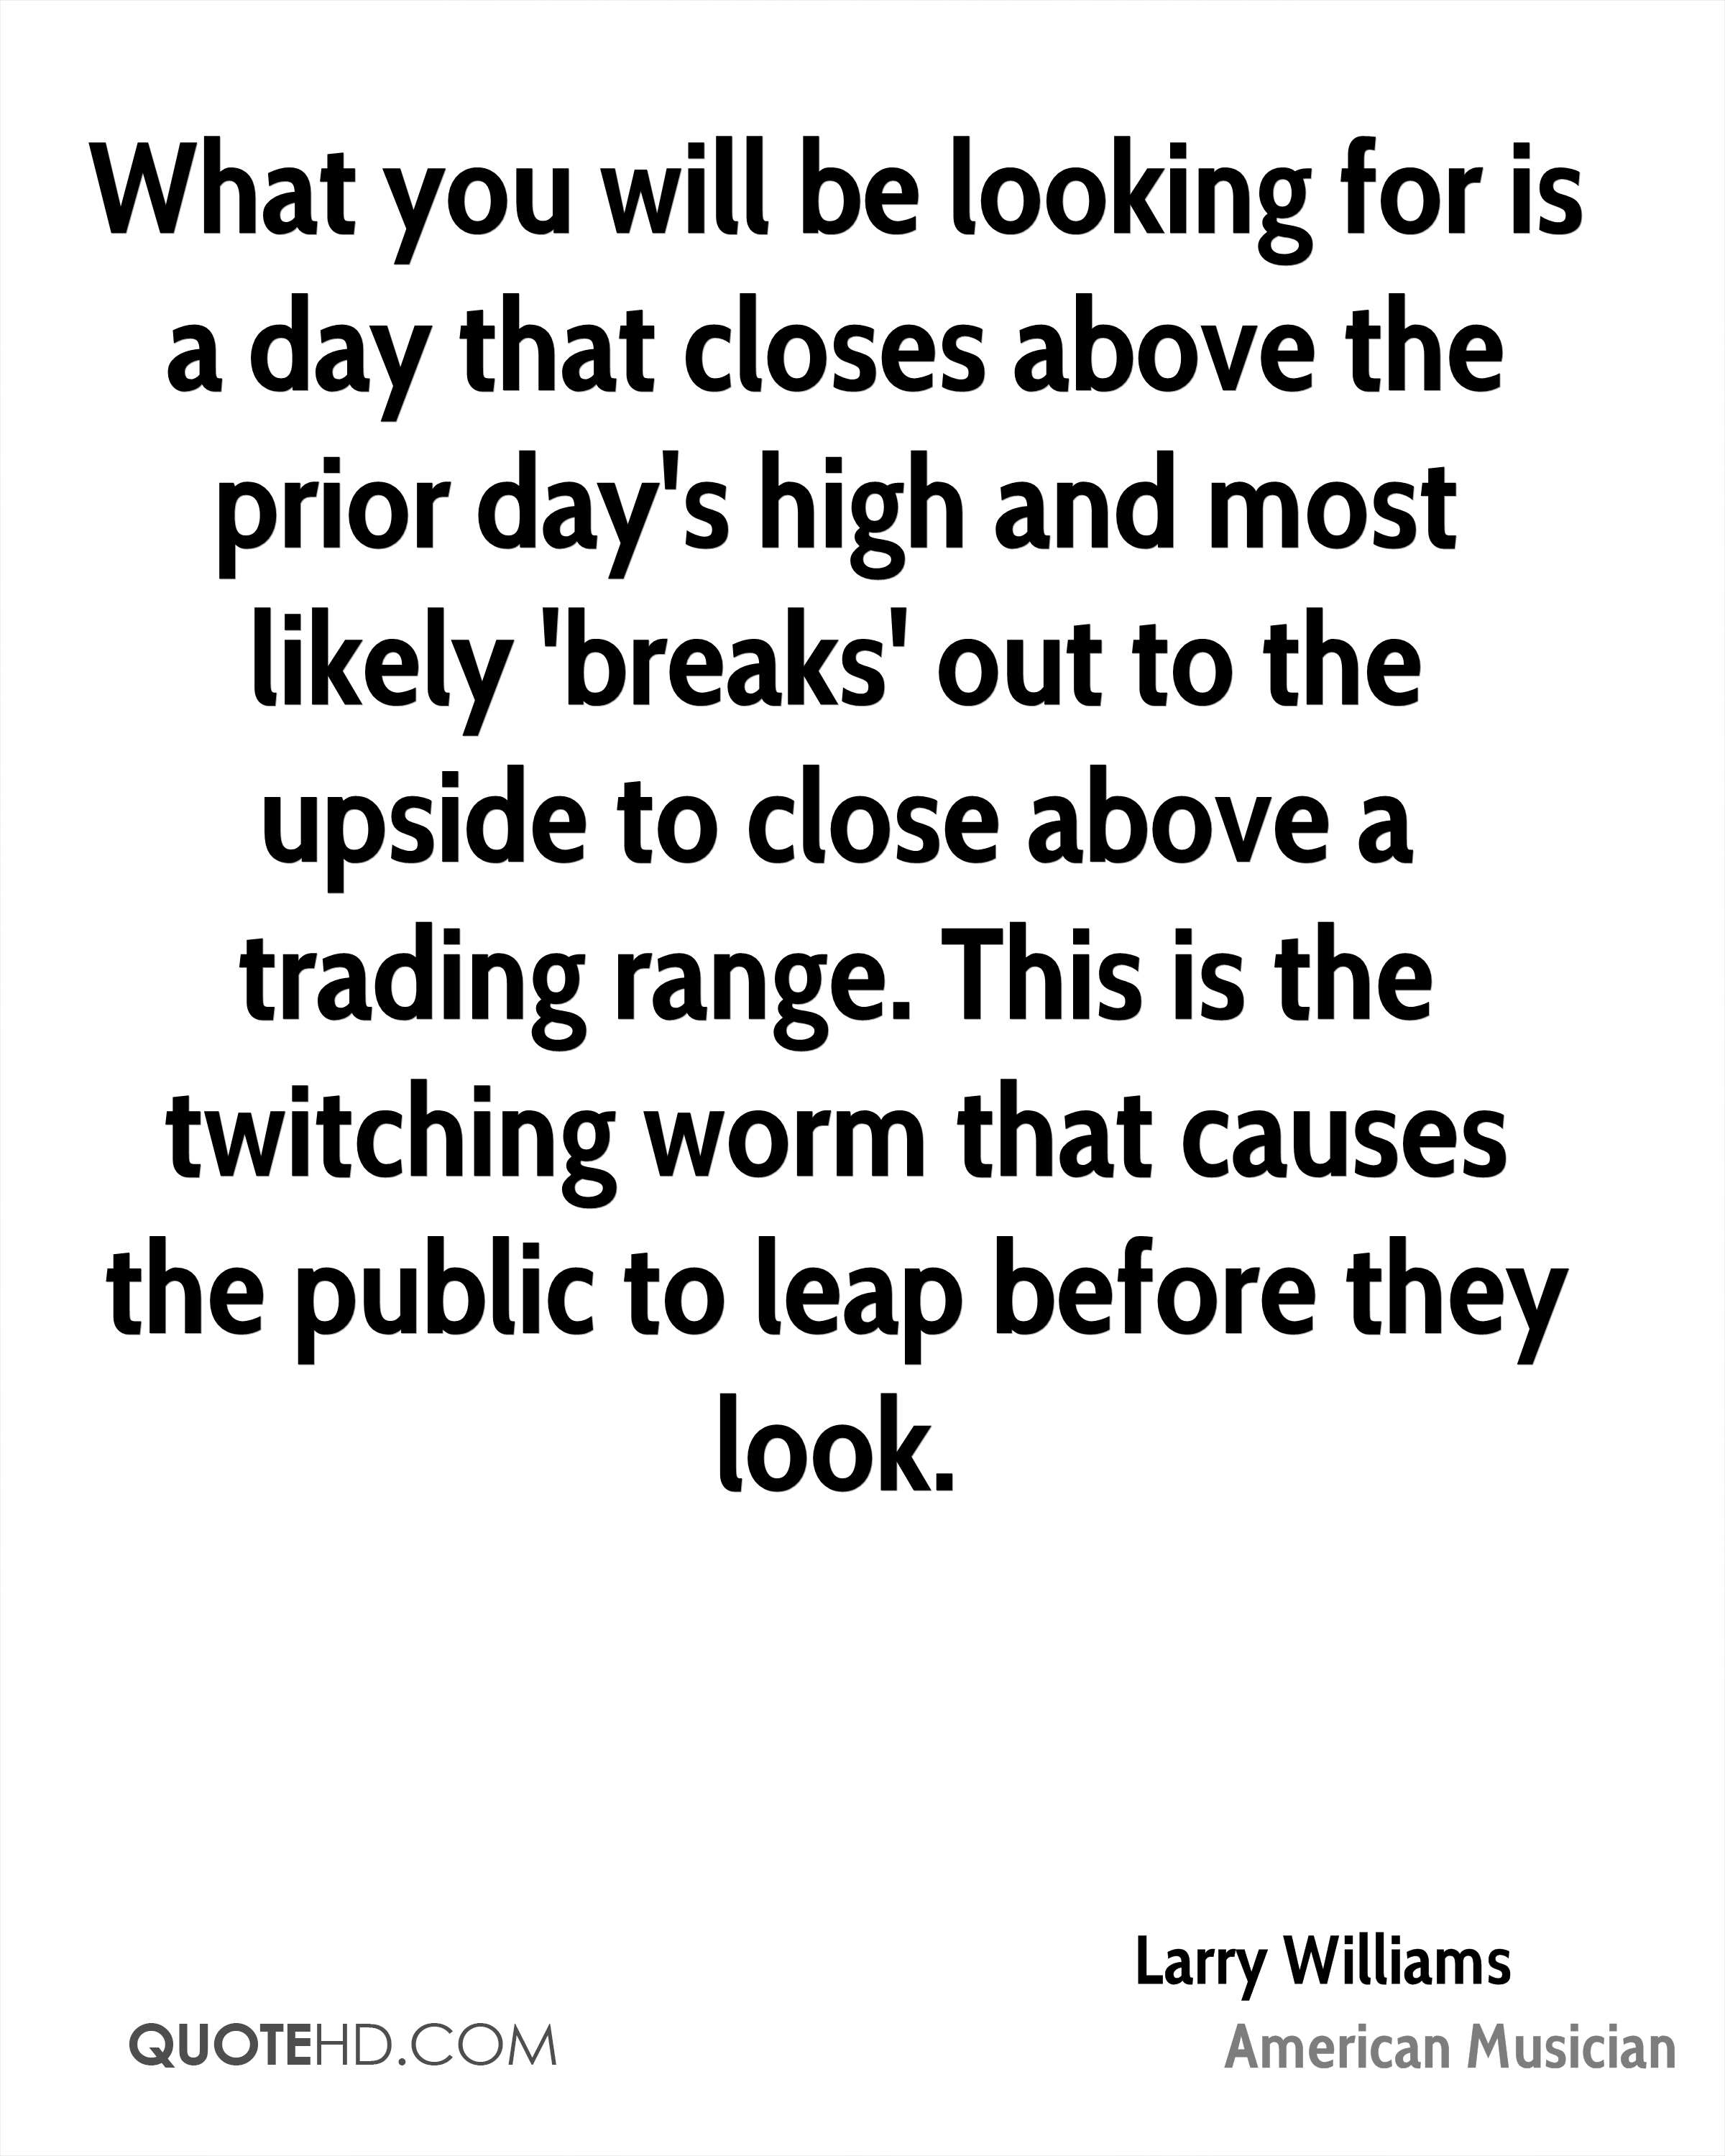 What you will be looking for is a day that closes above the prior day's high and most likely 'breaks' out to the upside to close above a trading range. This is the twitching worm that causes the public to leap before they look.